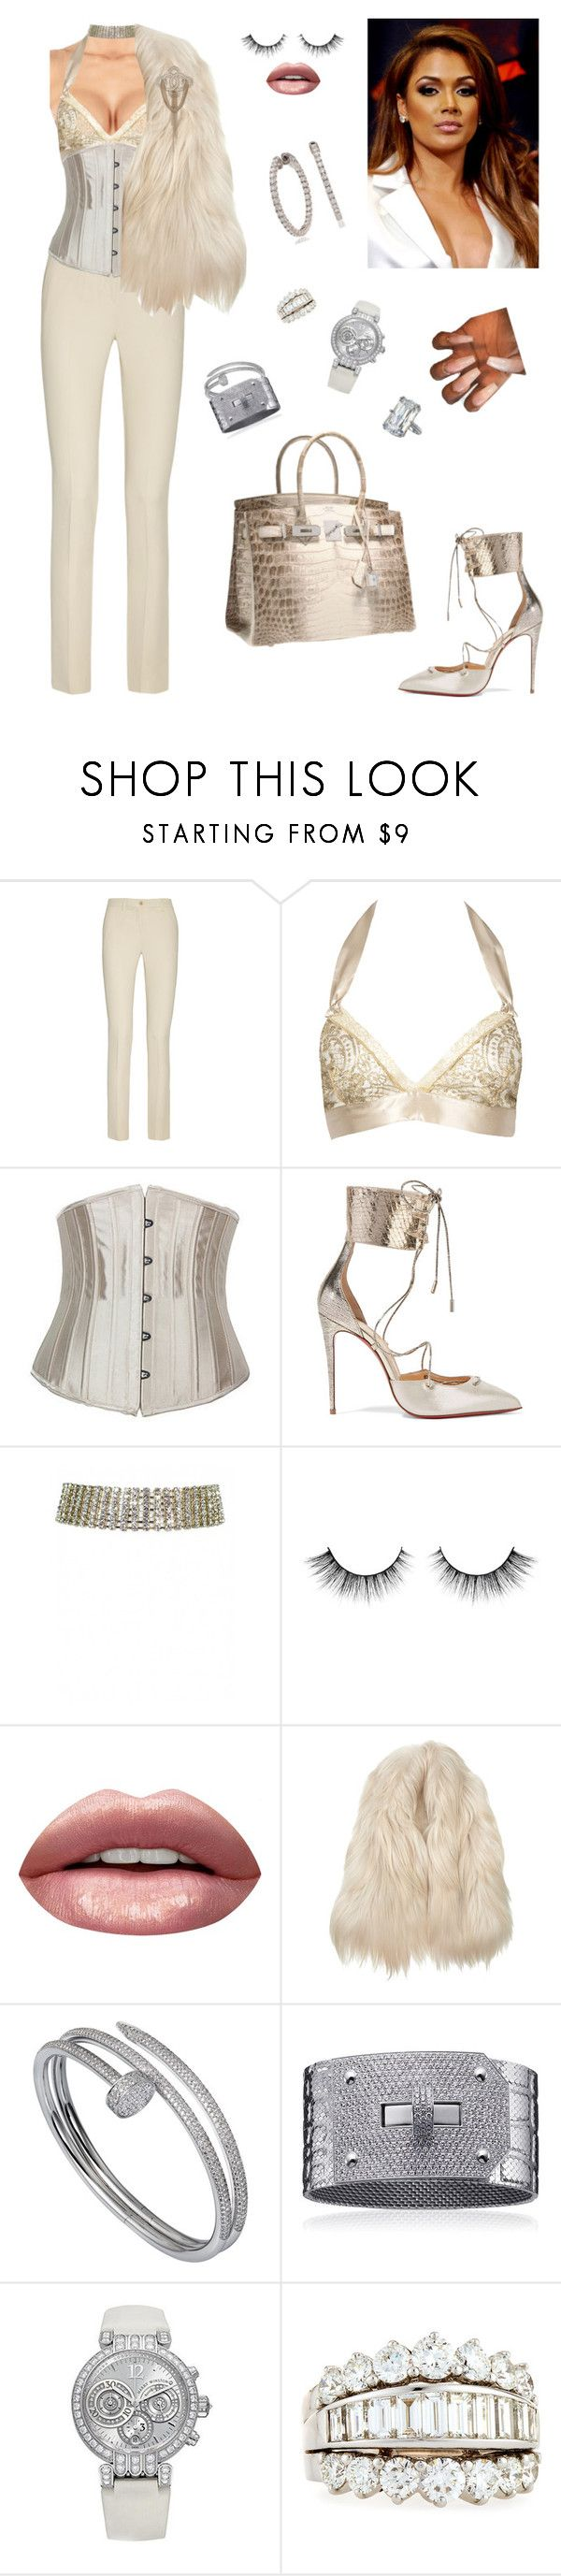 """""""Front Row at mayweather vs. Mcgregor fight!"""" by styledbystaes ❤ liked on Polyvore featuring Etro, Gilda & Pearl, Christian Louboutin, Huda Beauty, Maison Margiela, Cartier, Harry Winston, Chanel, Picchiotti and Chopard"""